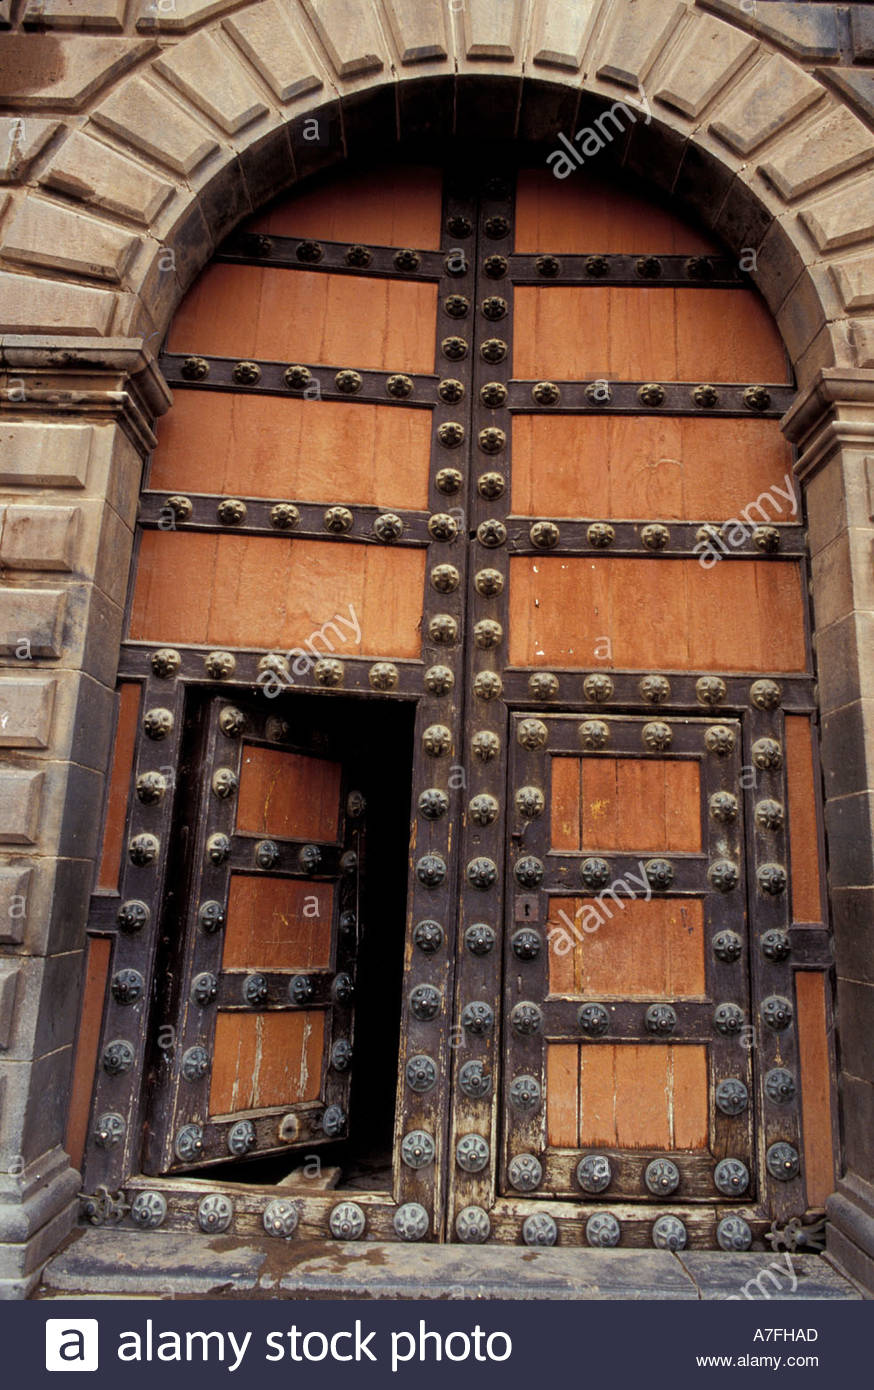 SA Peru Cuzco Plaza de Armas Wooden doors of the cathedral (1669 : doors sa - pezcame.com